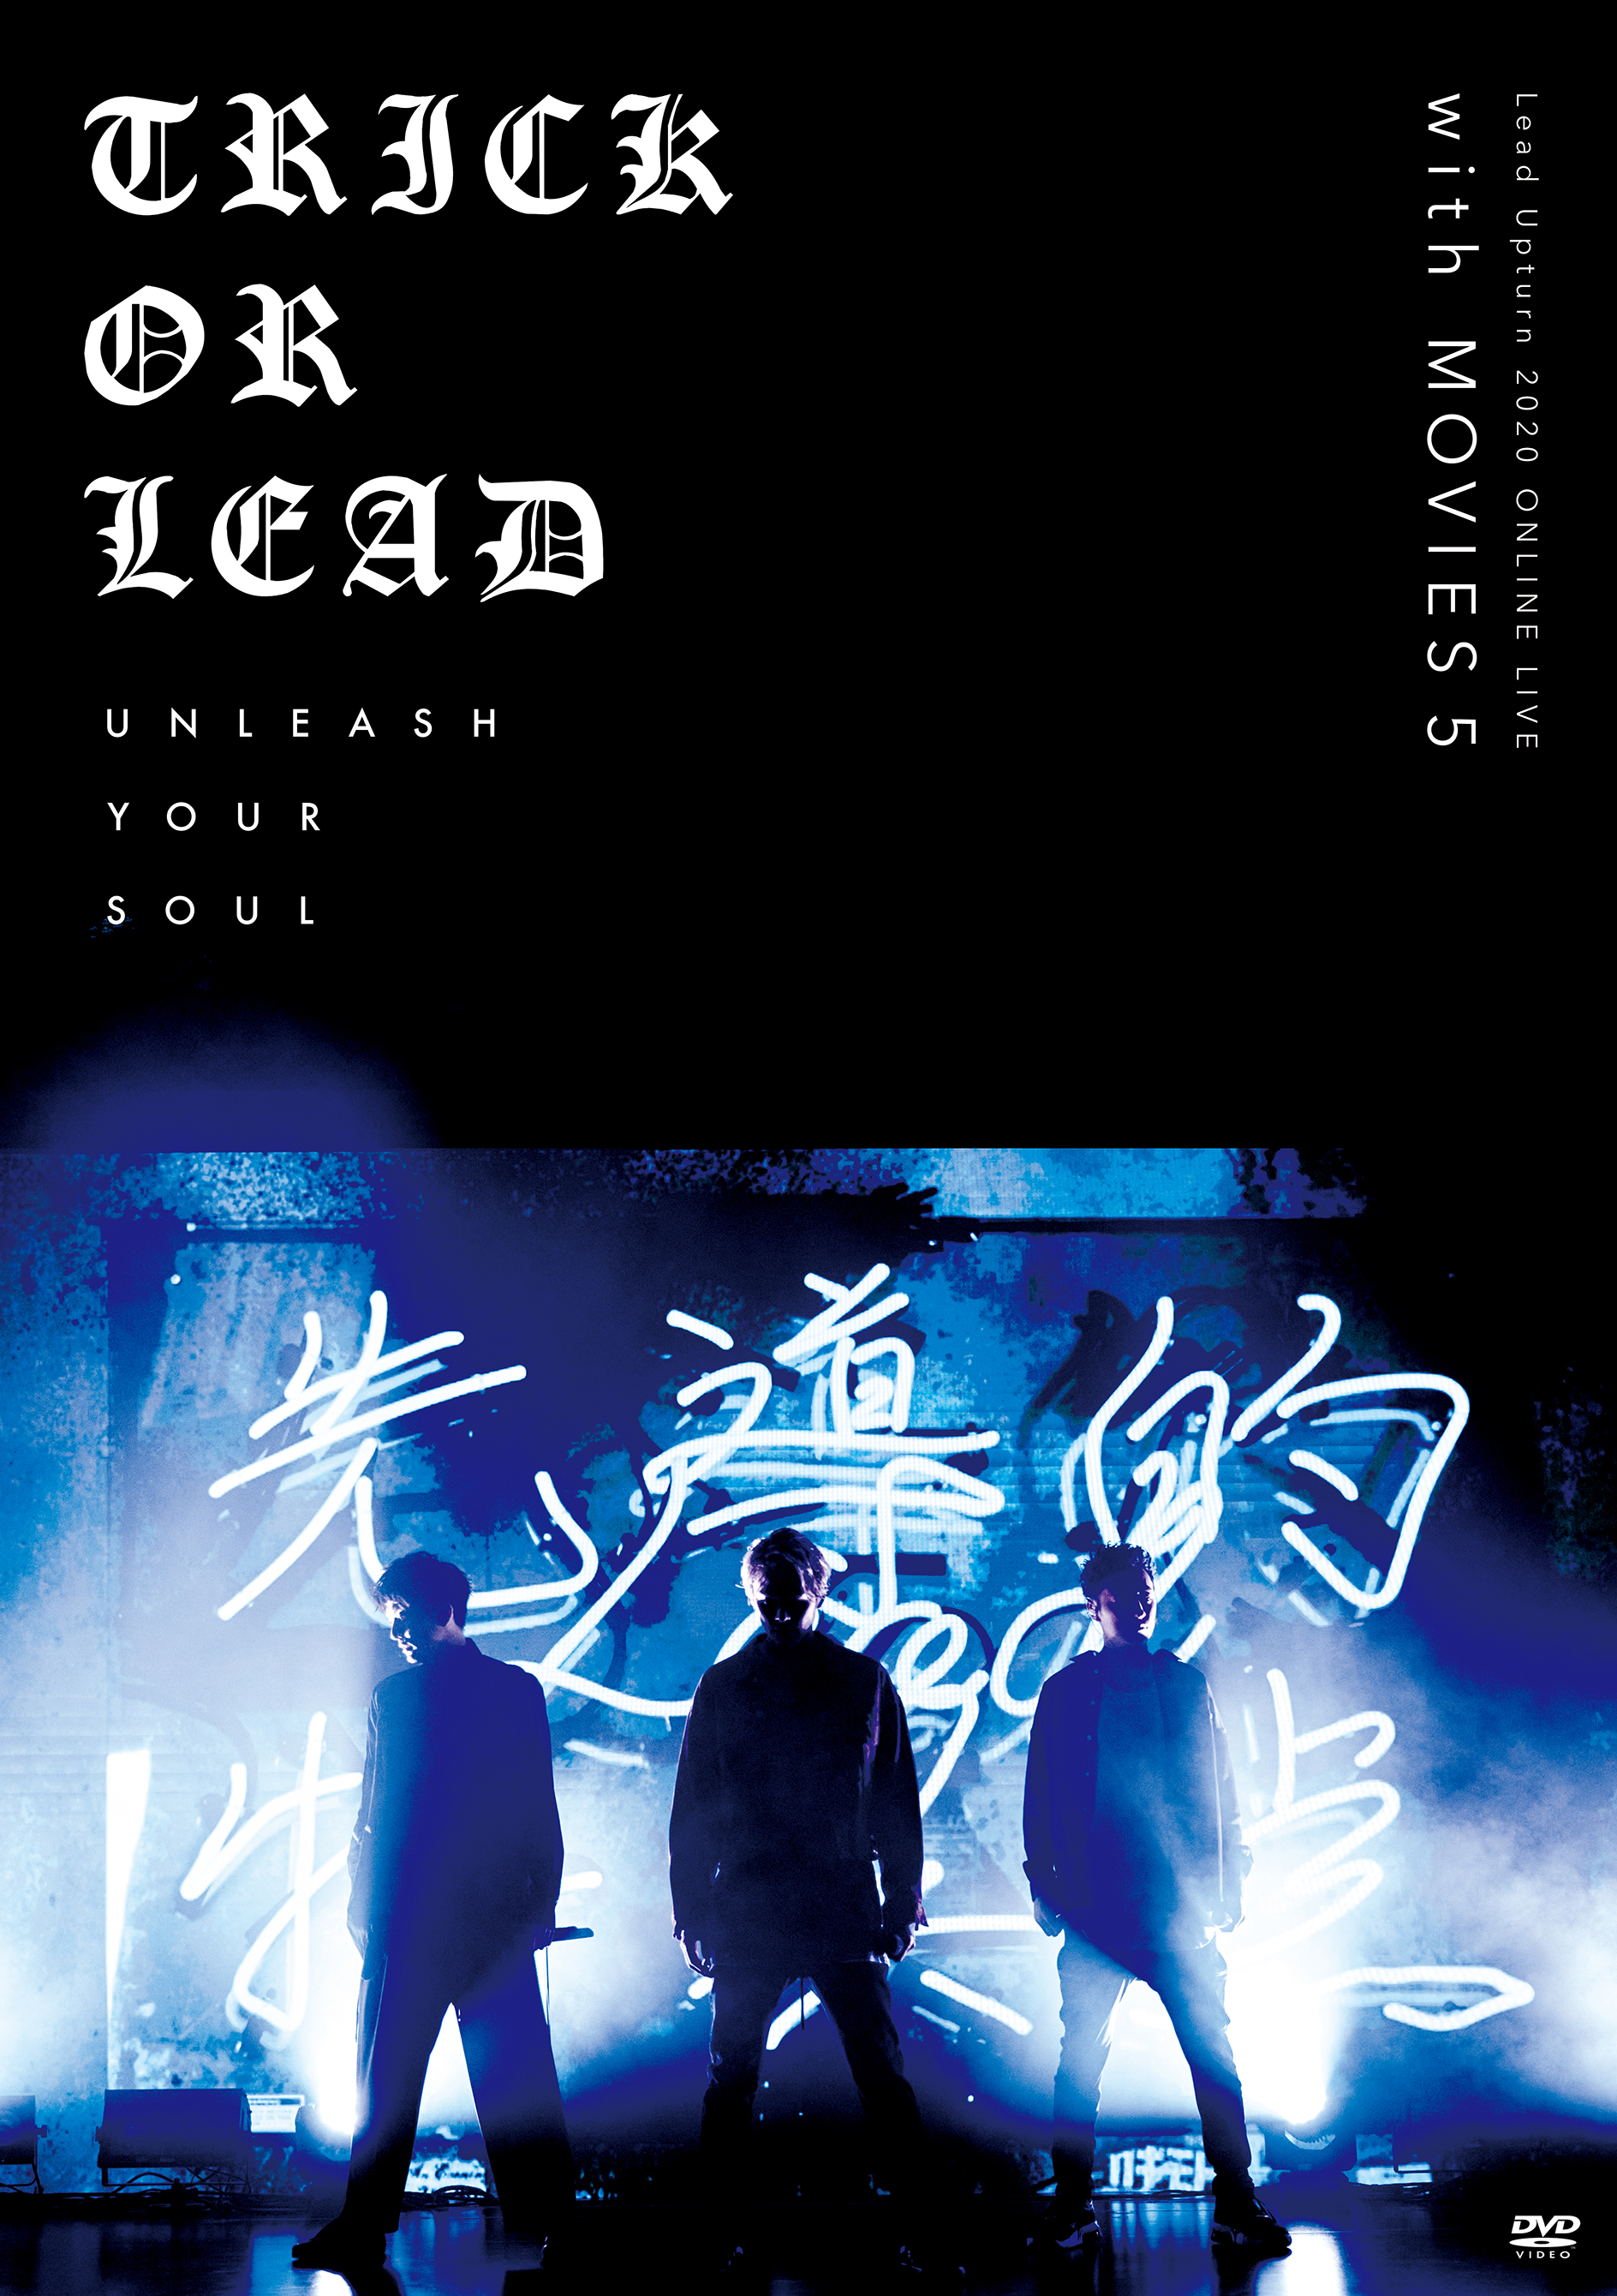 l_Lead_upturn20_DVD_jkt